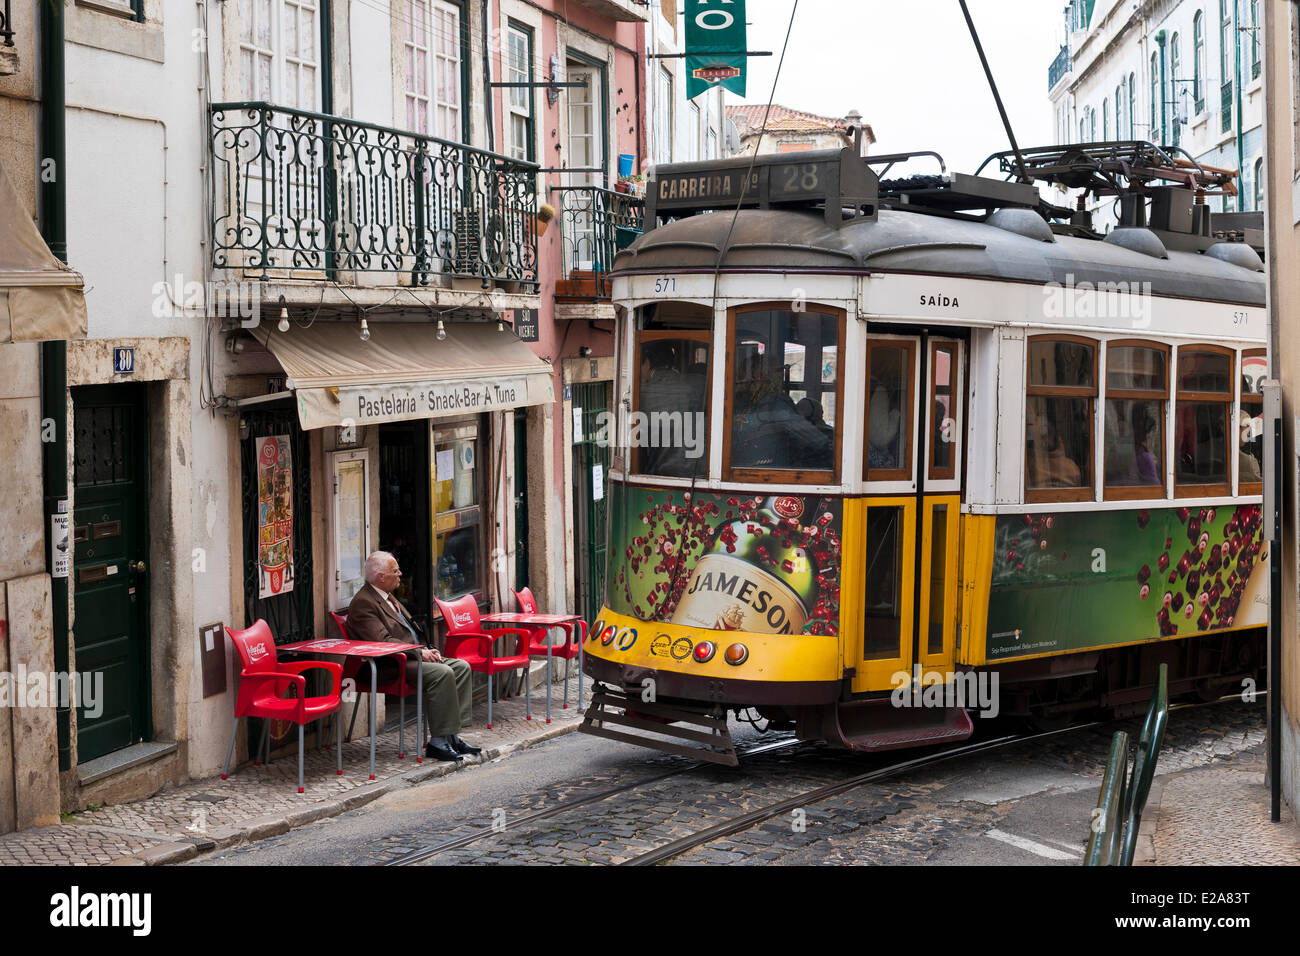 Portugal, Lisbon, the tramway is the most convenient means of transport - Stock Image